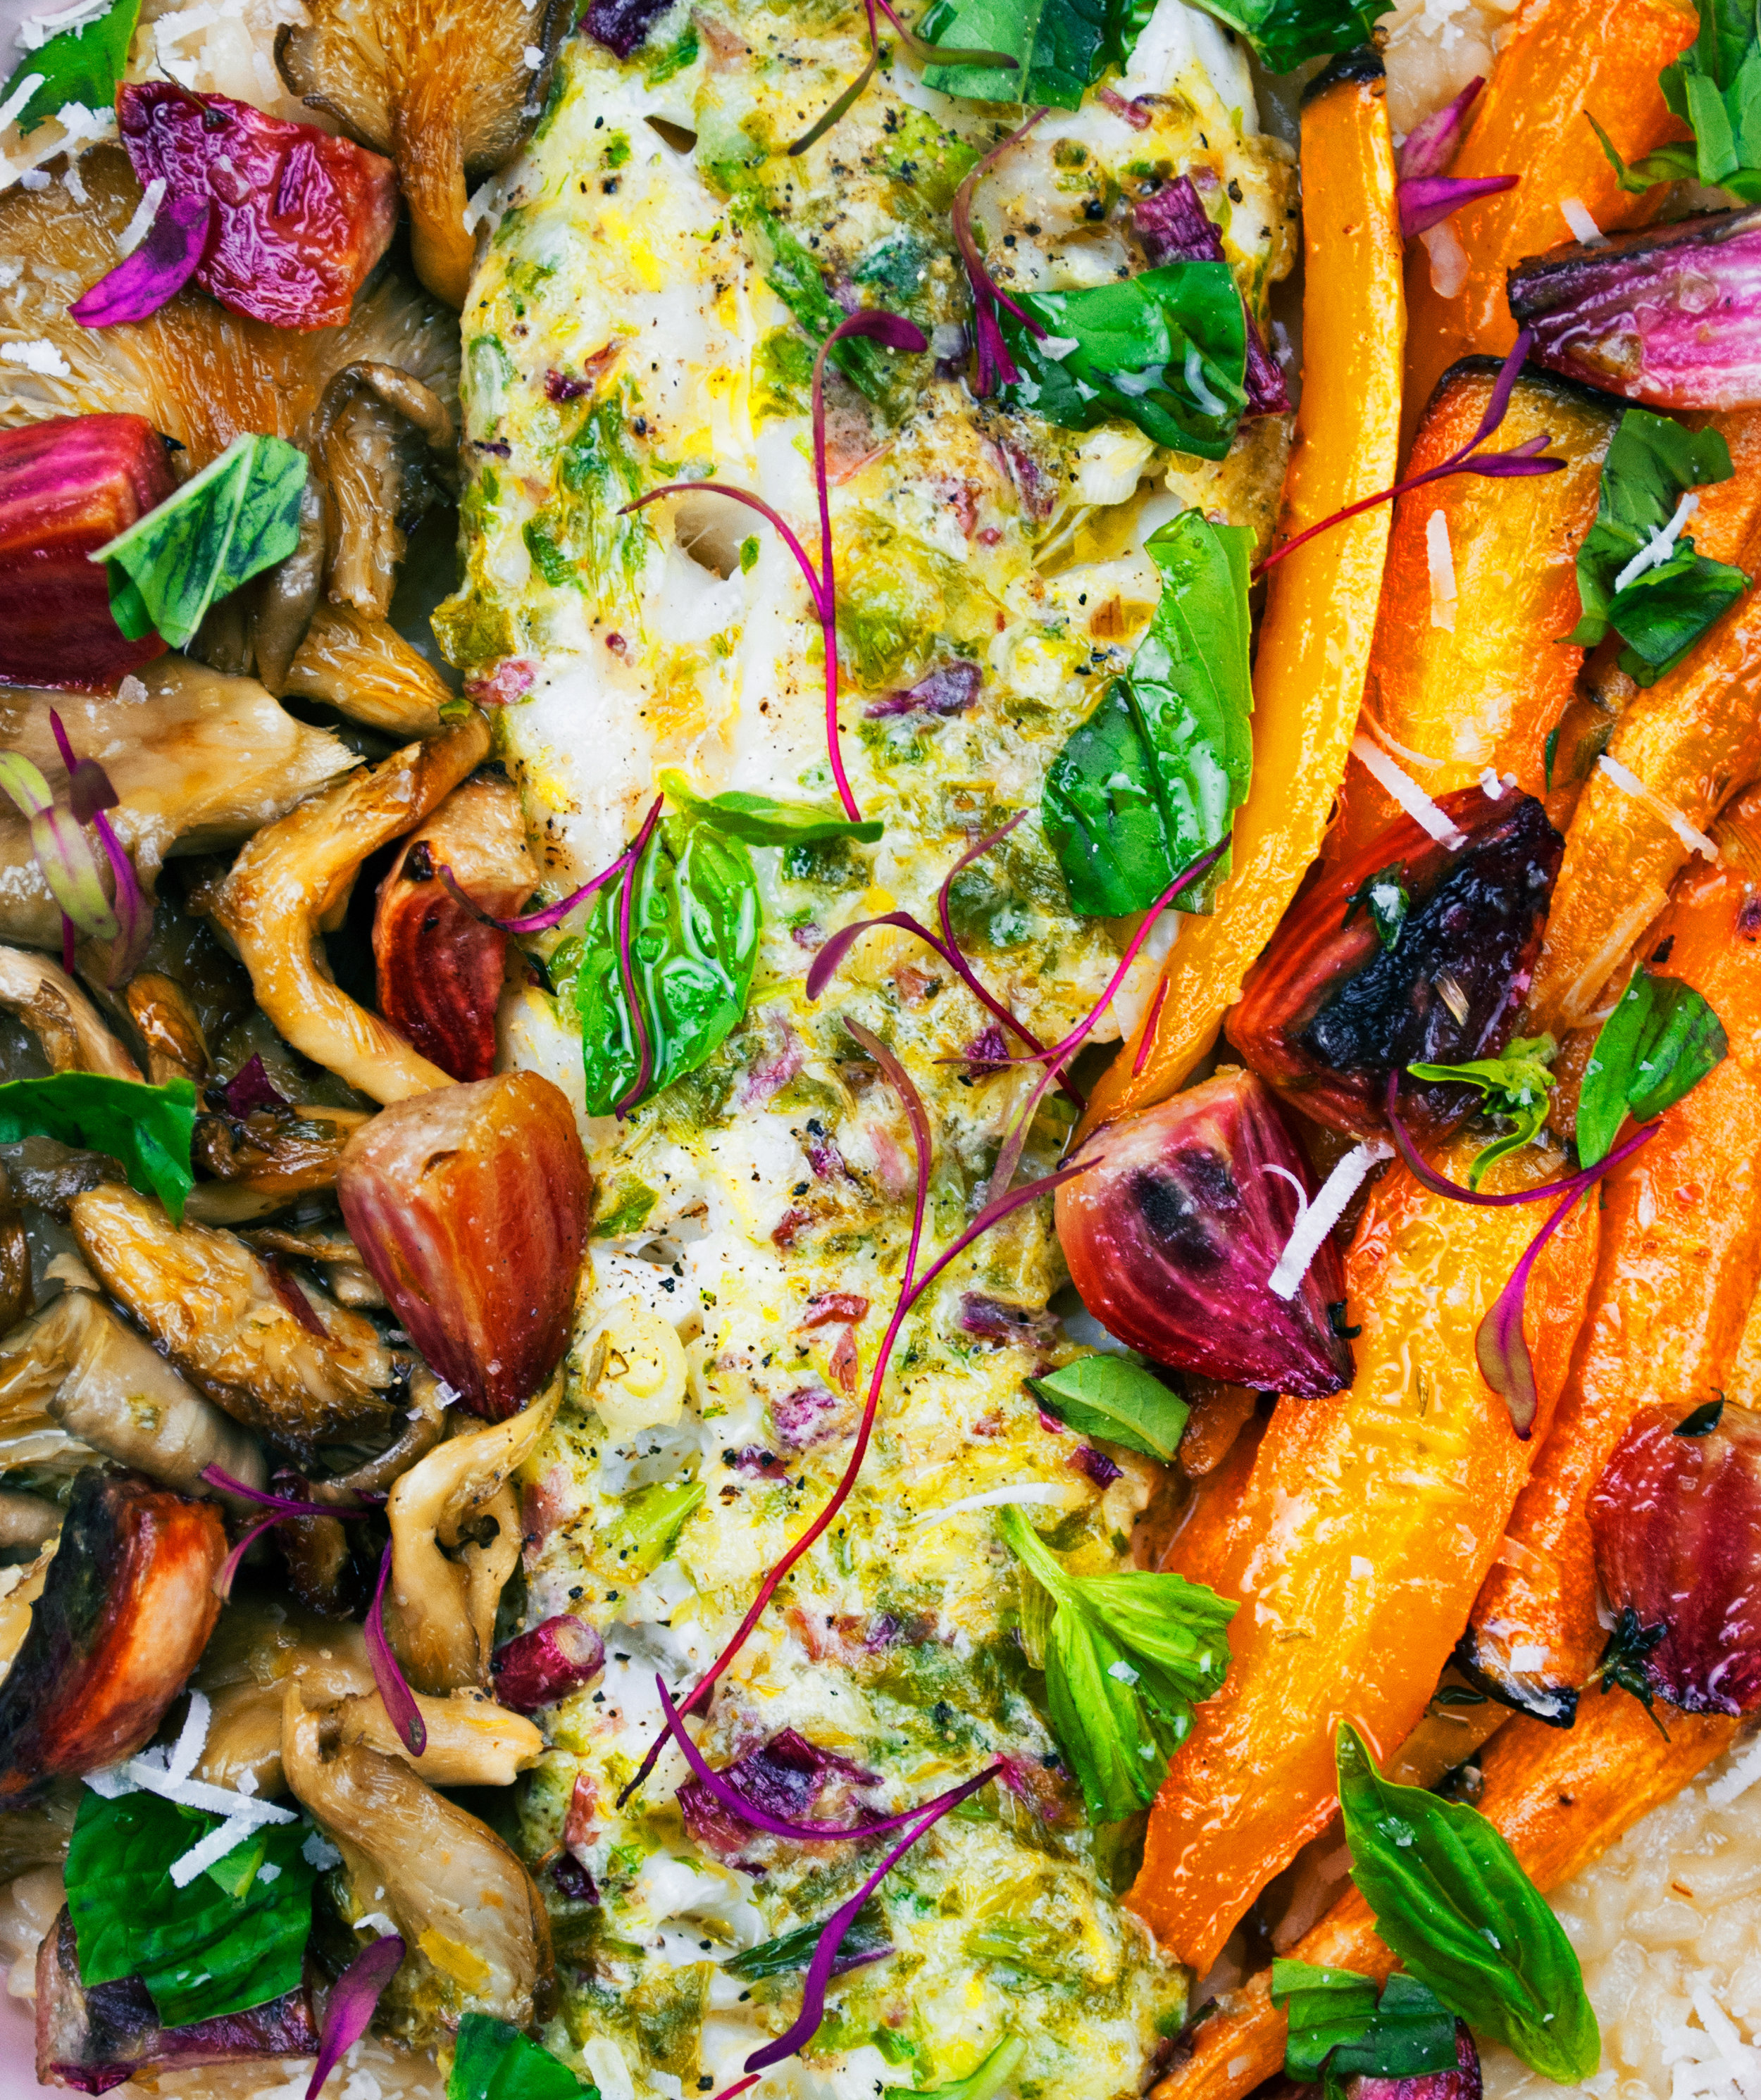 cod risotto 3 high res.jpg